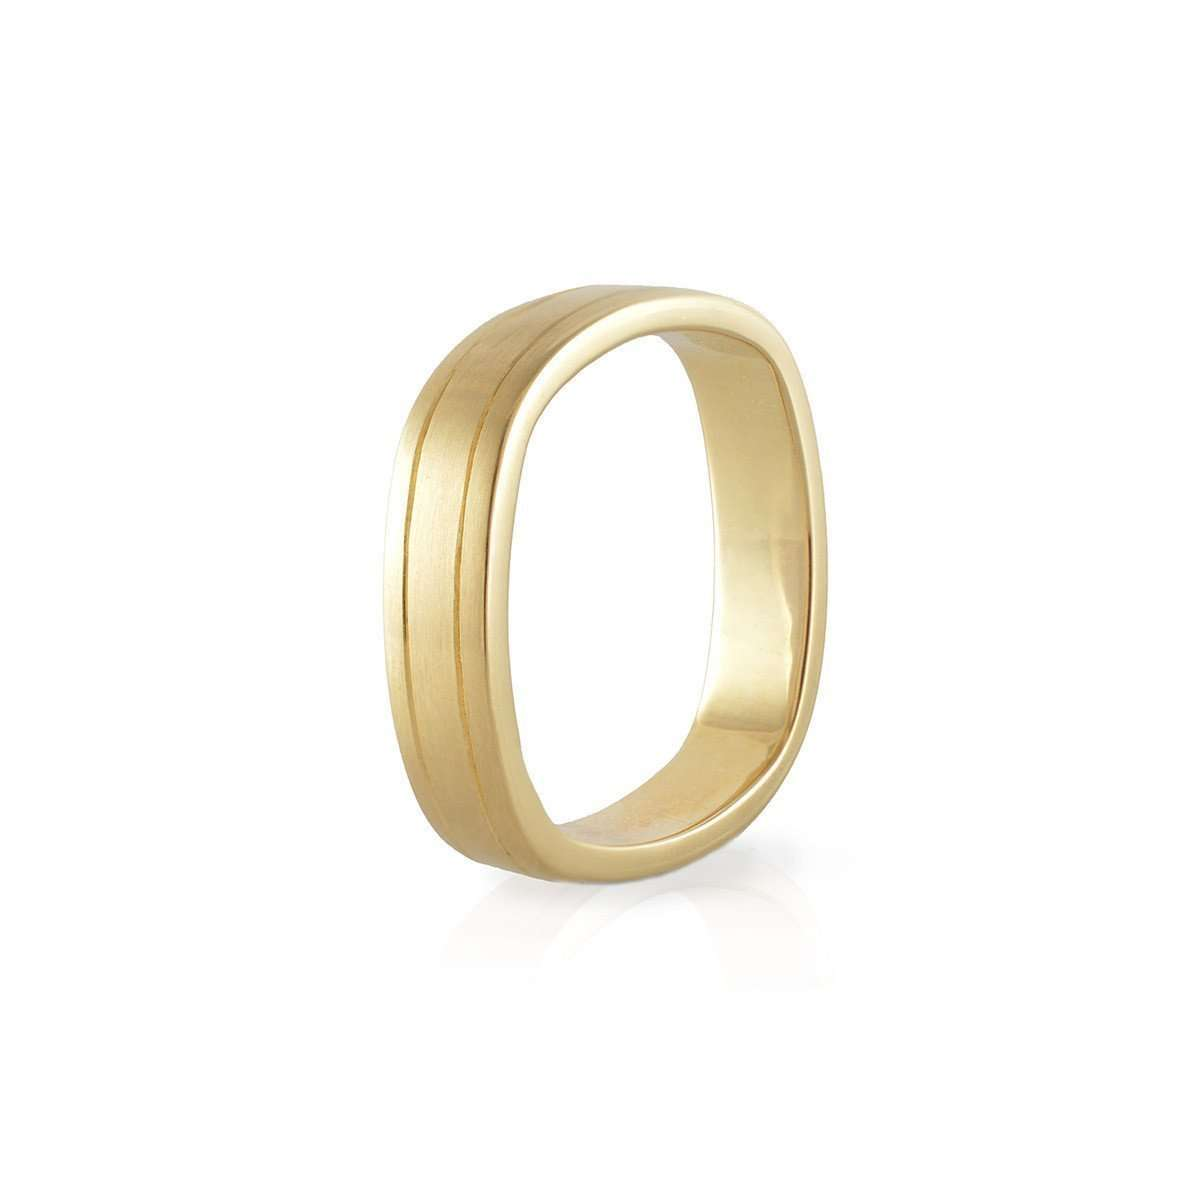 Men's Yellow Gold, Comfort Fit Engraved Wedding Band-Nigel OReilly Goldsmith and Jewellery Design-JewelStreet US